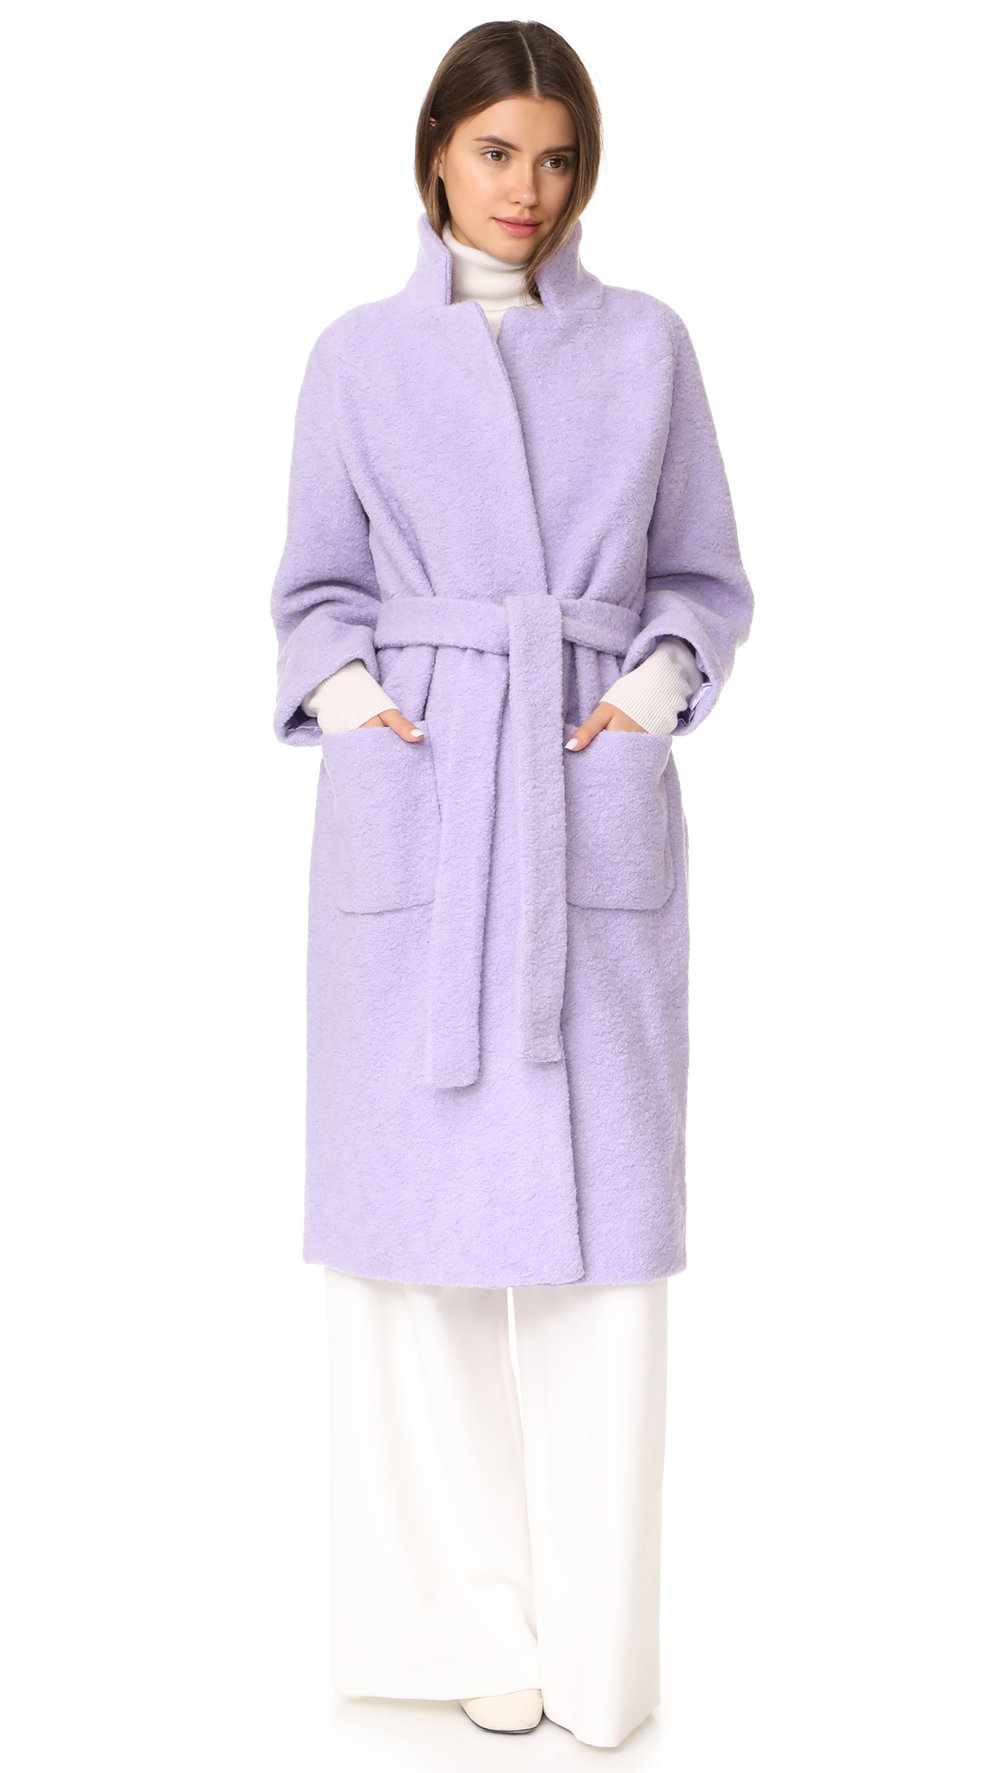 - FENN WRAP COAT / Ganni $245 (sale) available at Shopbop